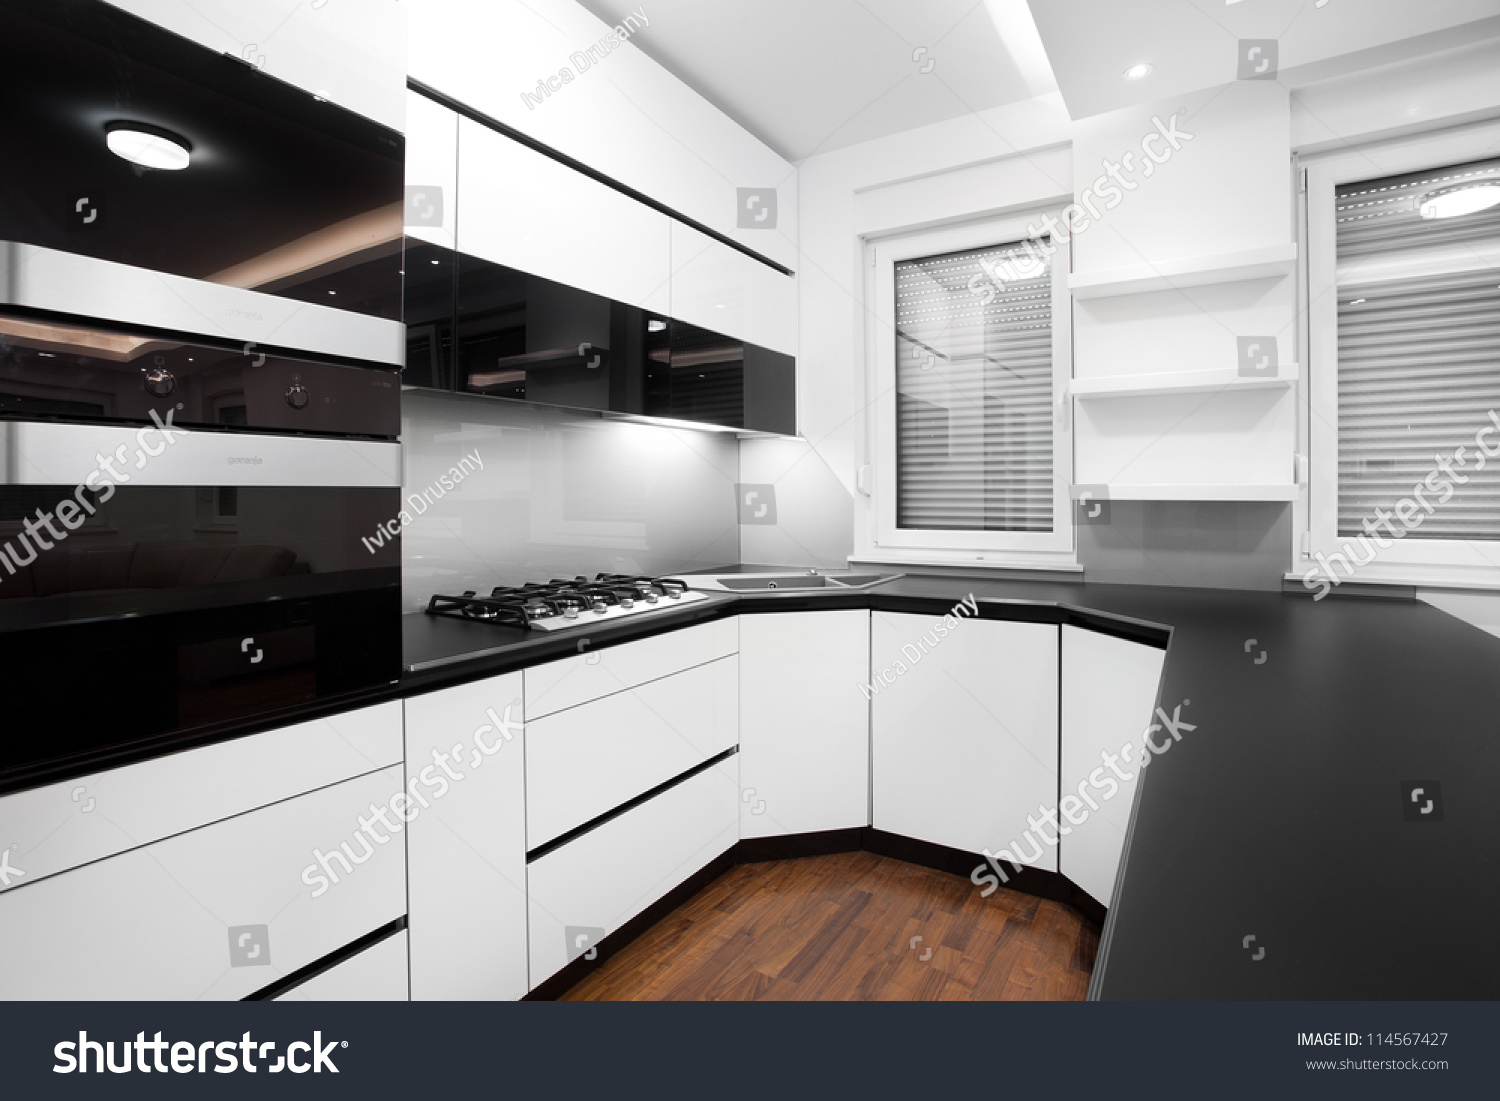 Black And White Modern Kitchen New Modern Kitchen In Black And White Colors Stock Photo 114567427